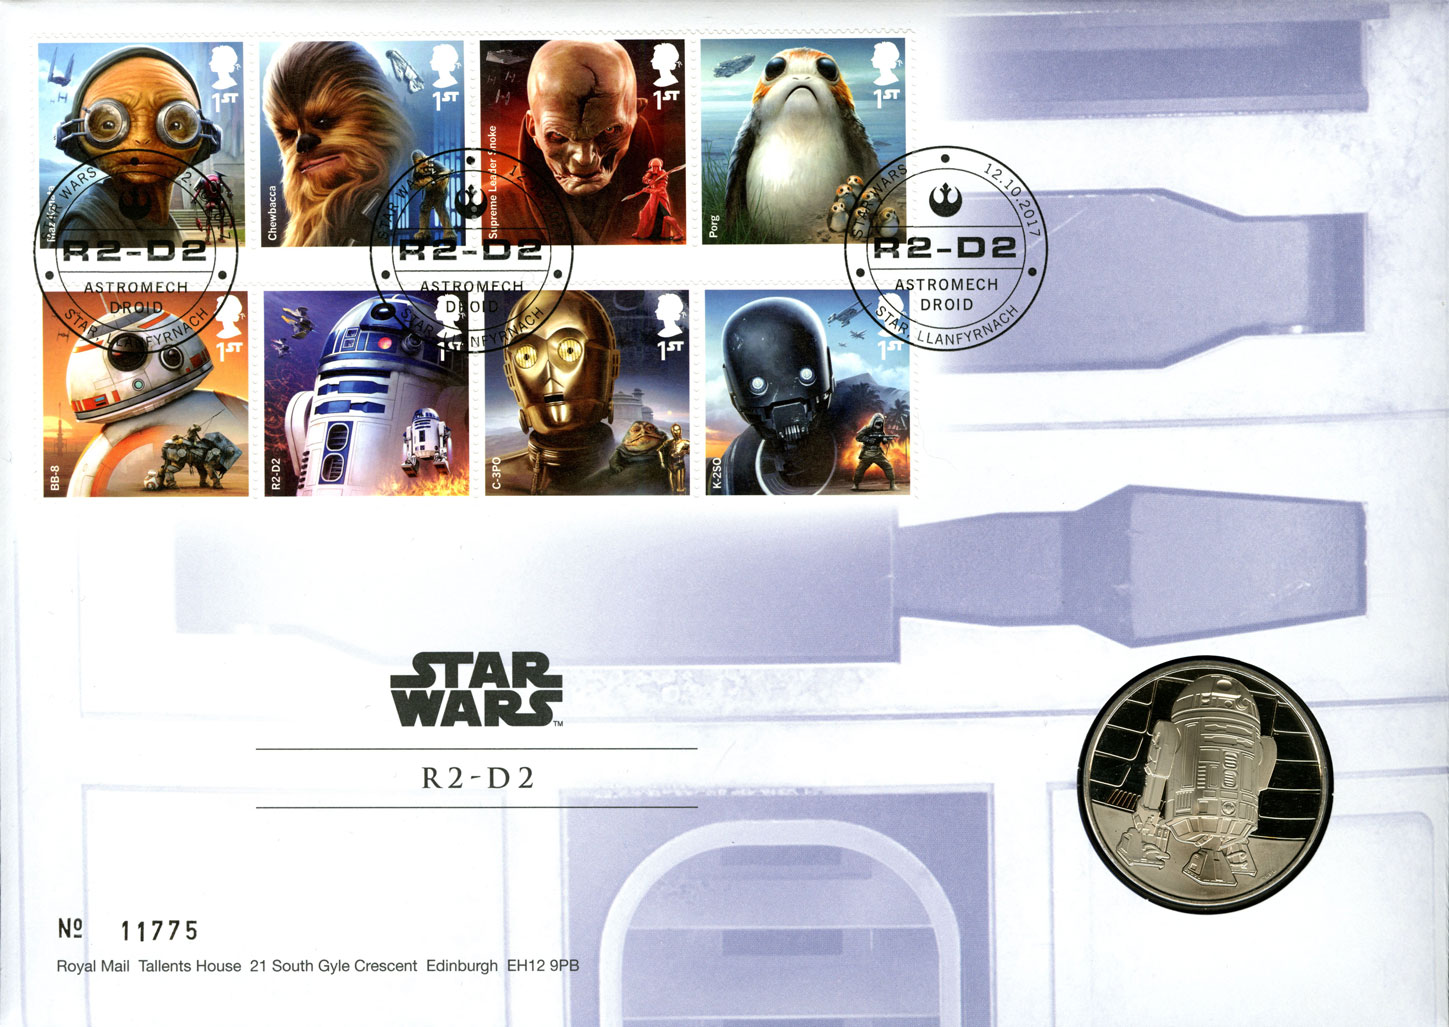 Star Wars 2017 coin cover with the issued stamps and the R2D2 medal.